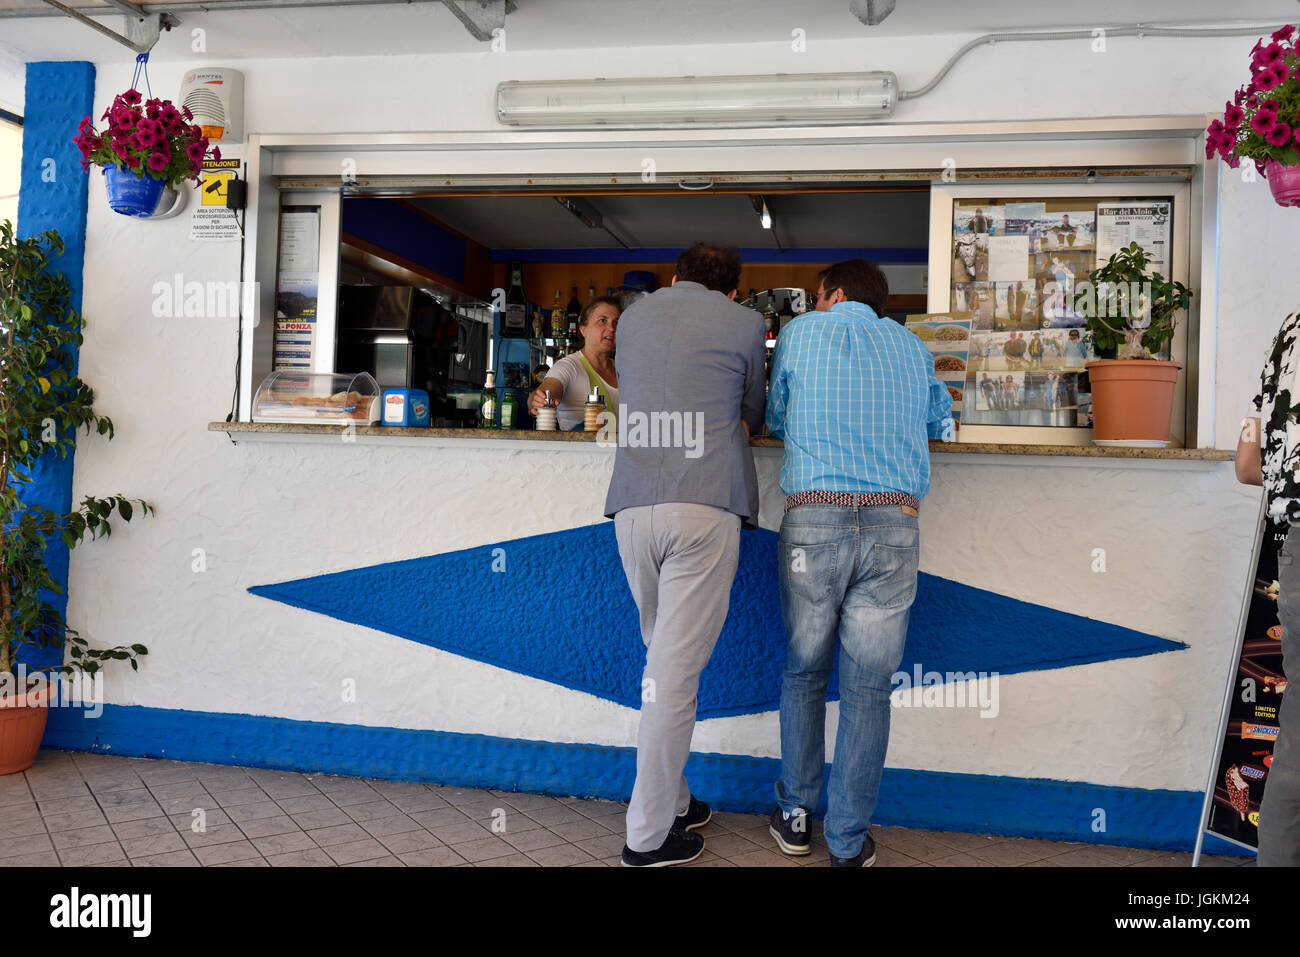 The backs of two men looking in the serving window of dinner - Stock Image